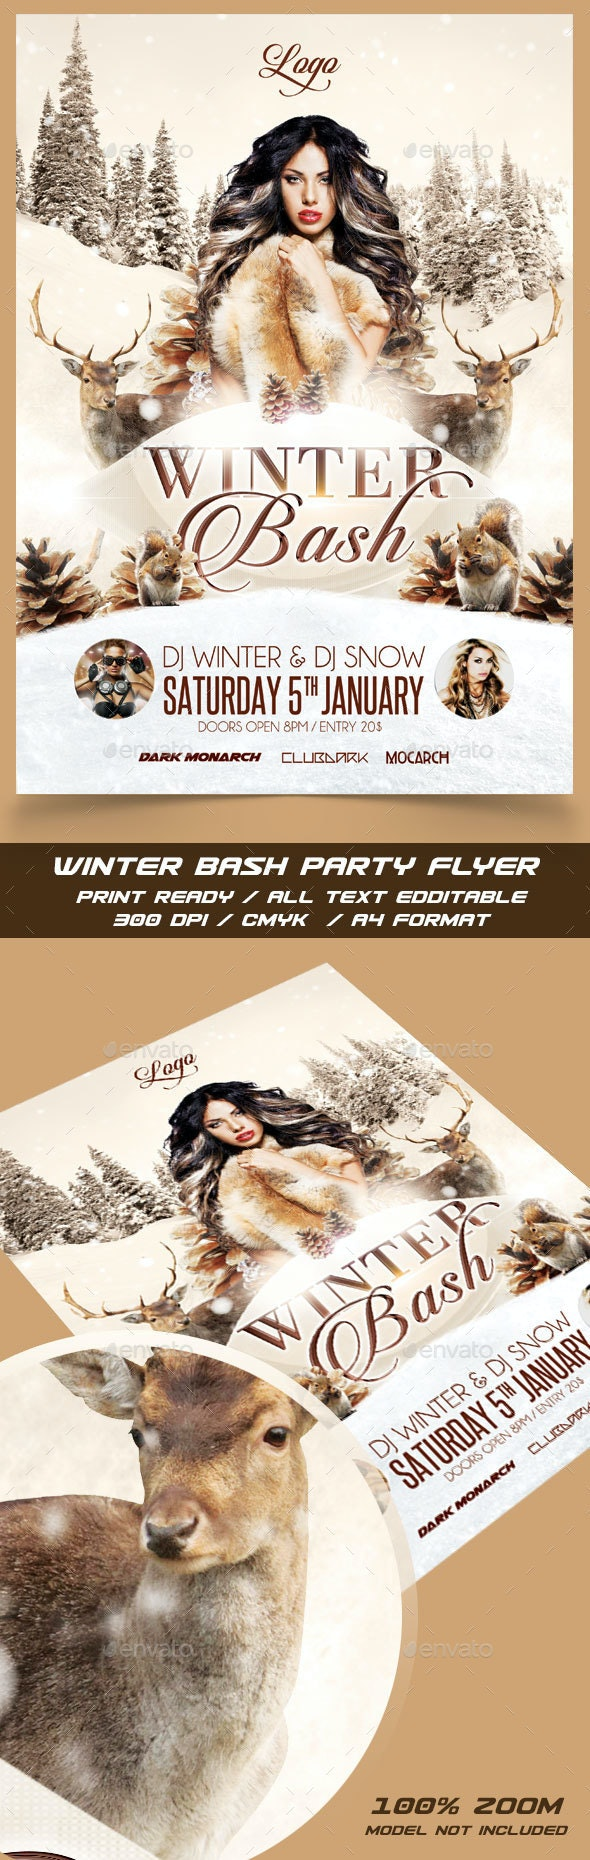 Winter Bash Party Flyer - Events Flyers